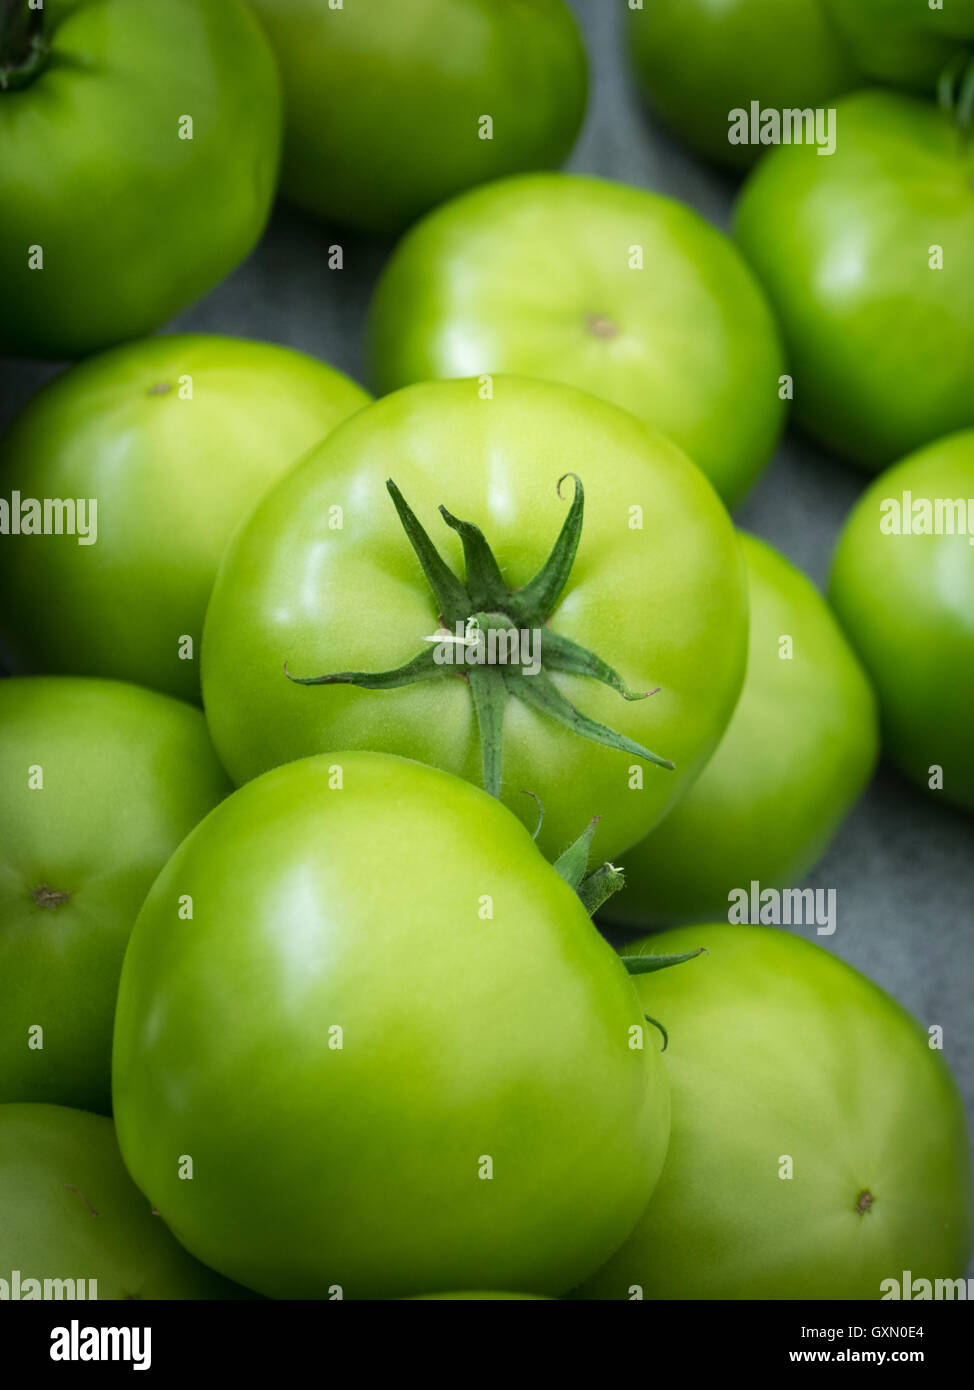 Green tomatoes for sale at the City Market (104 Street Market) in Edmonton, Alberta, Canada. - Stock Image